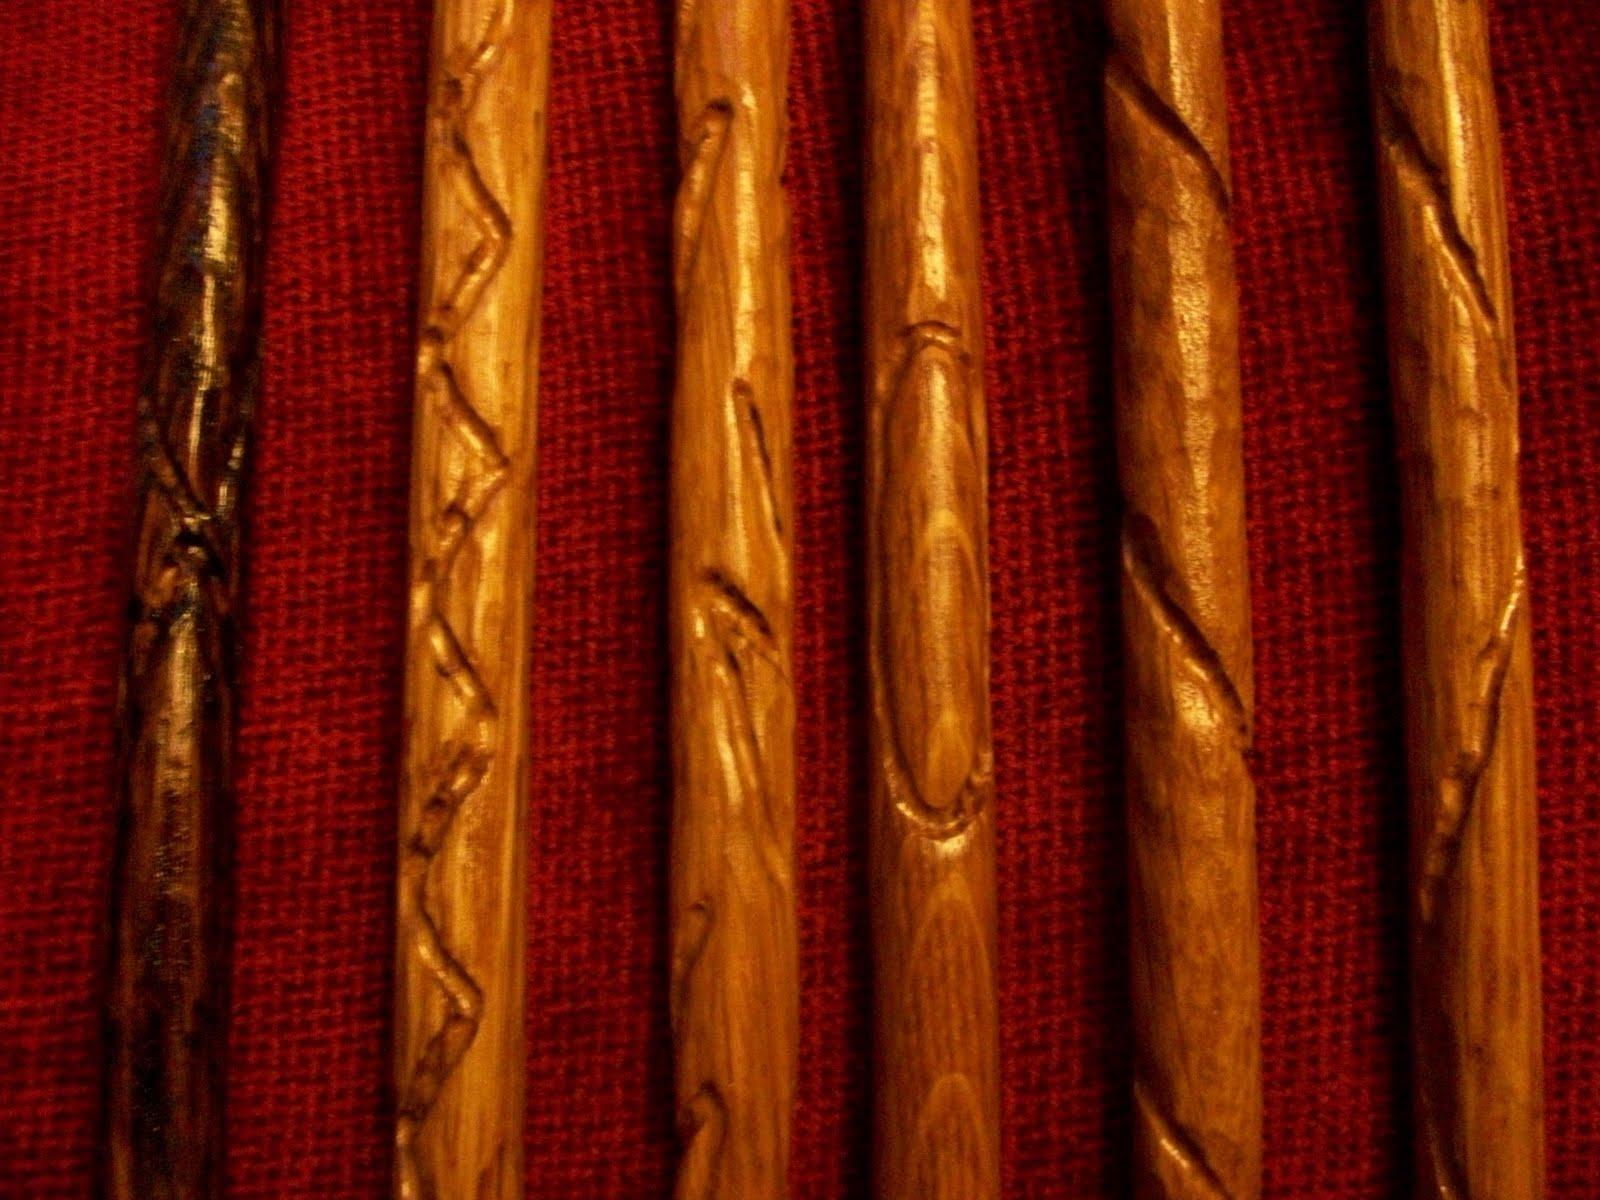 Wands And Woodcraft